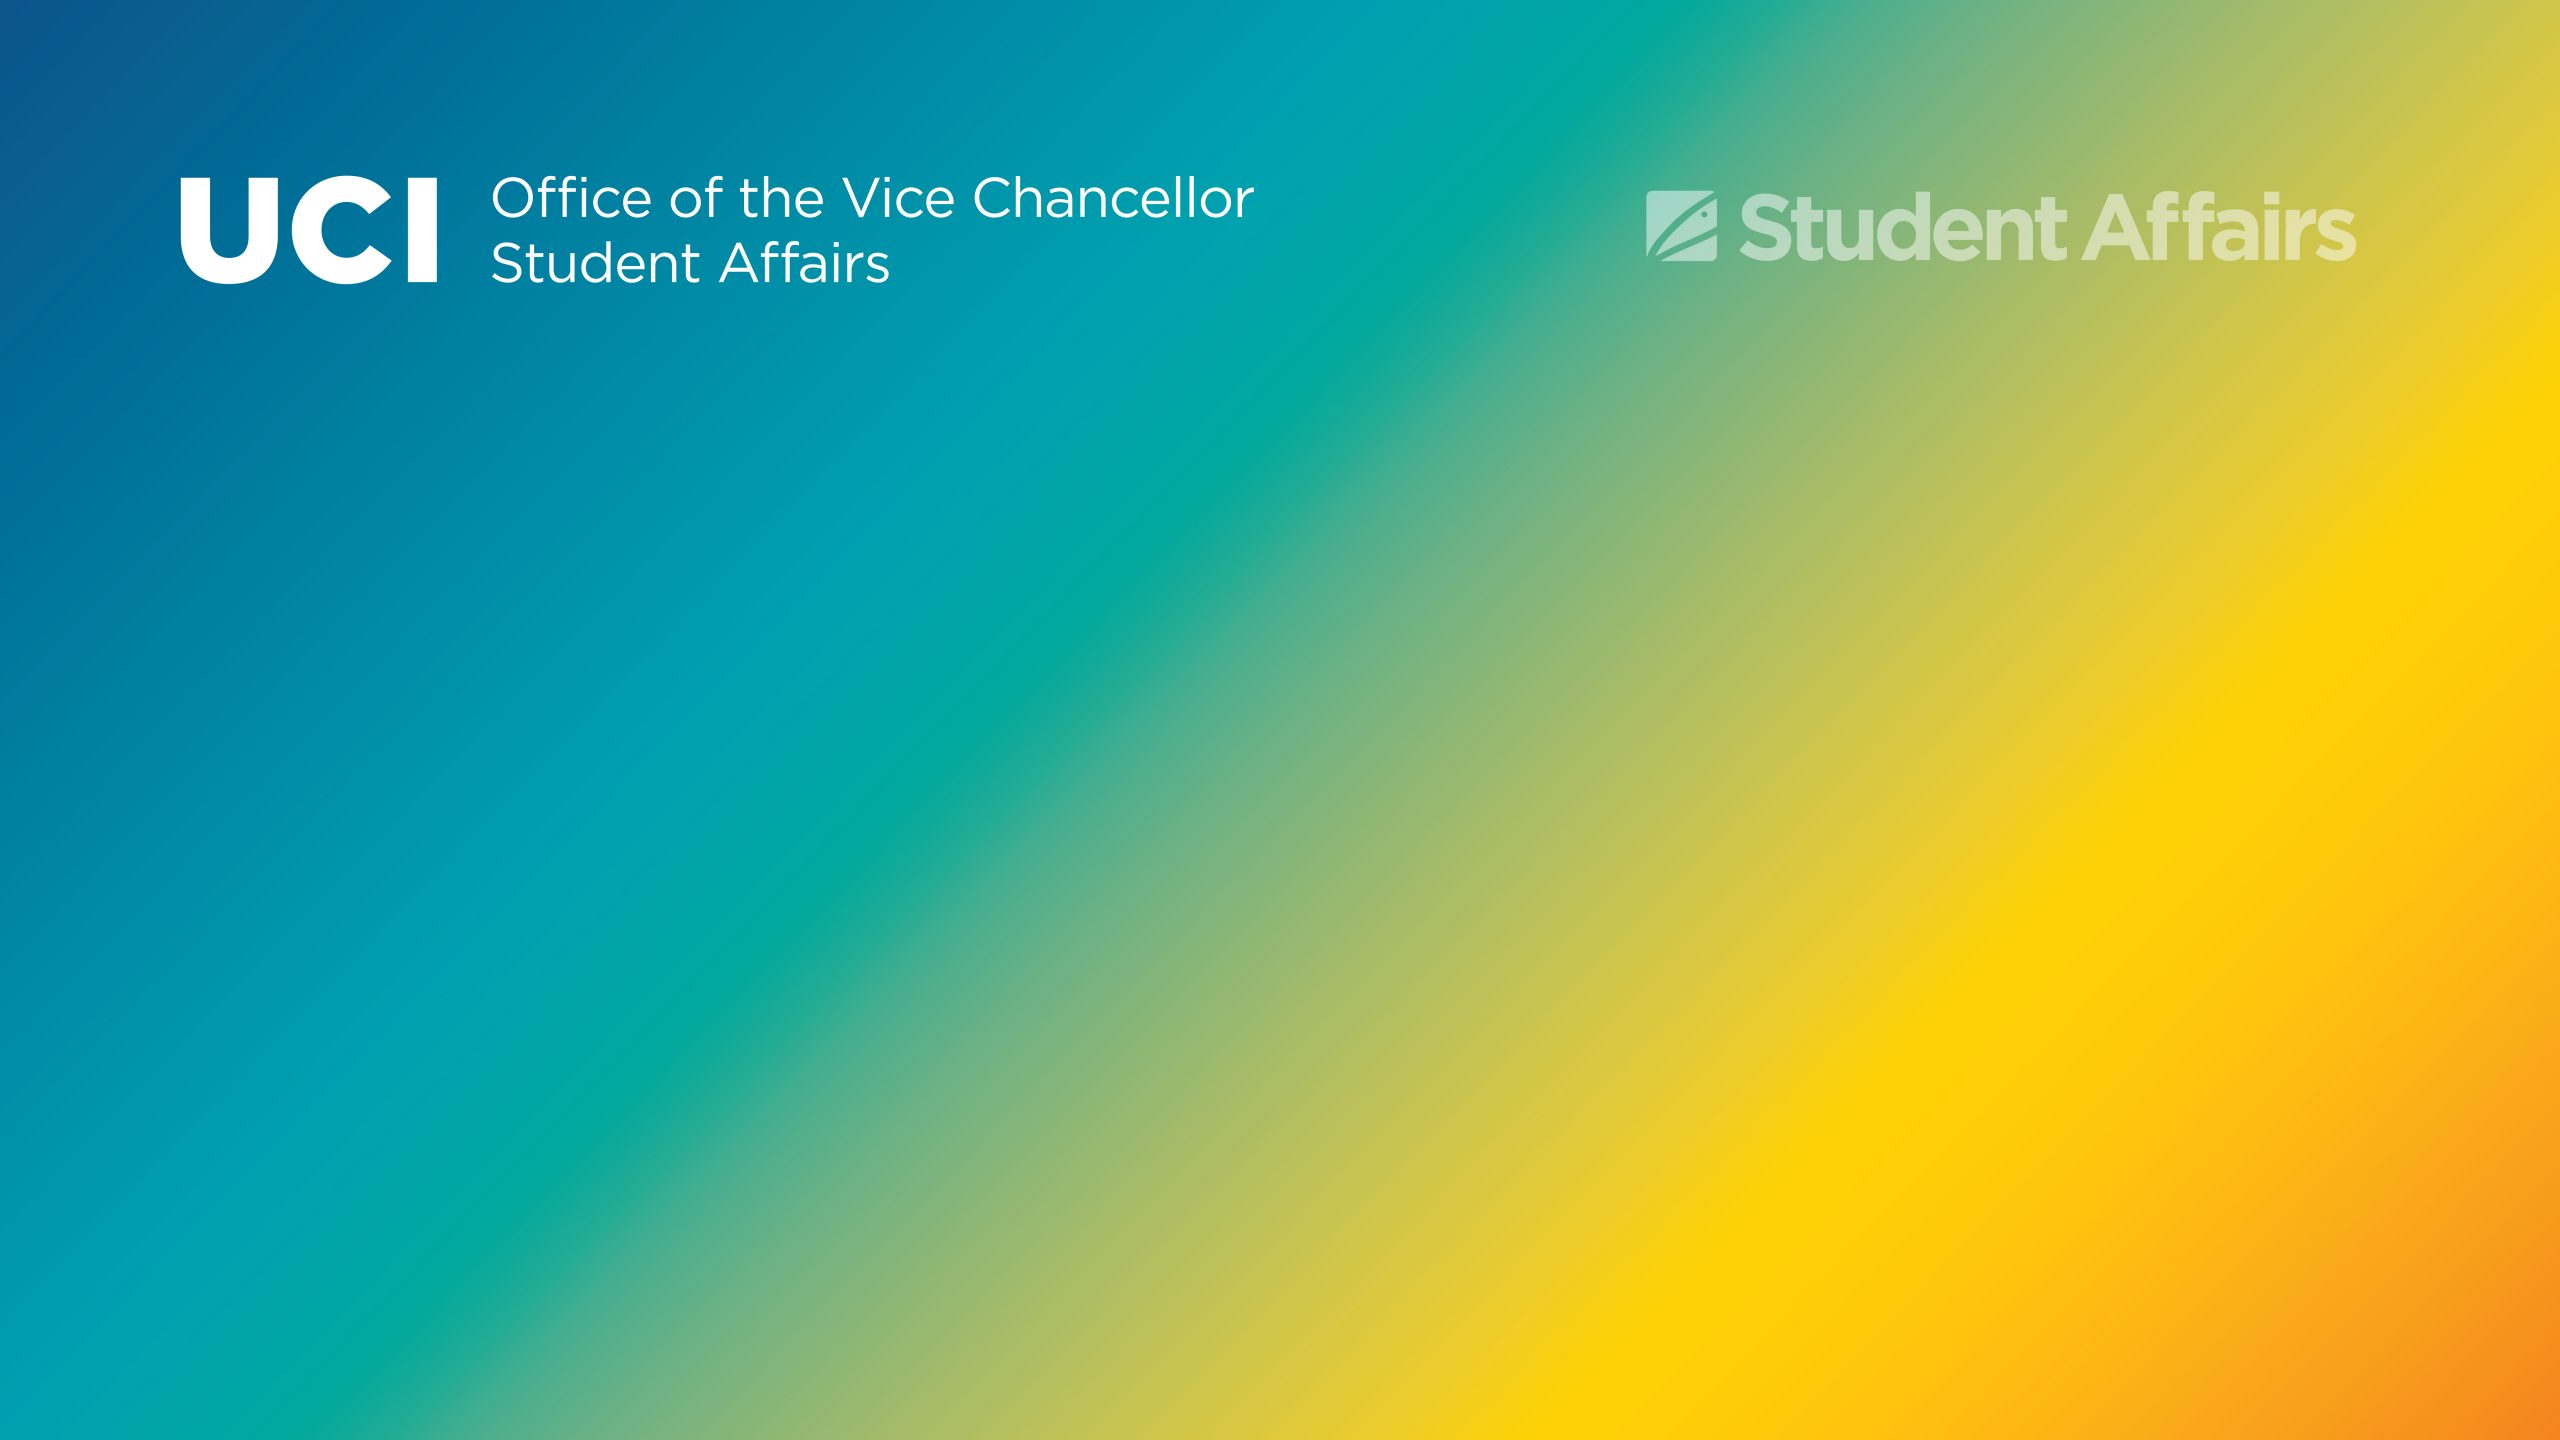 Blue gold gradient background with transparent white OVCSA and Student Affairs graphic at top